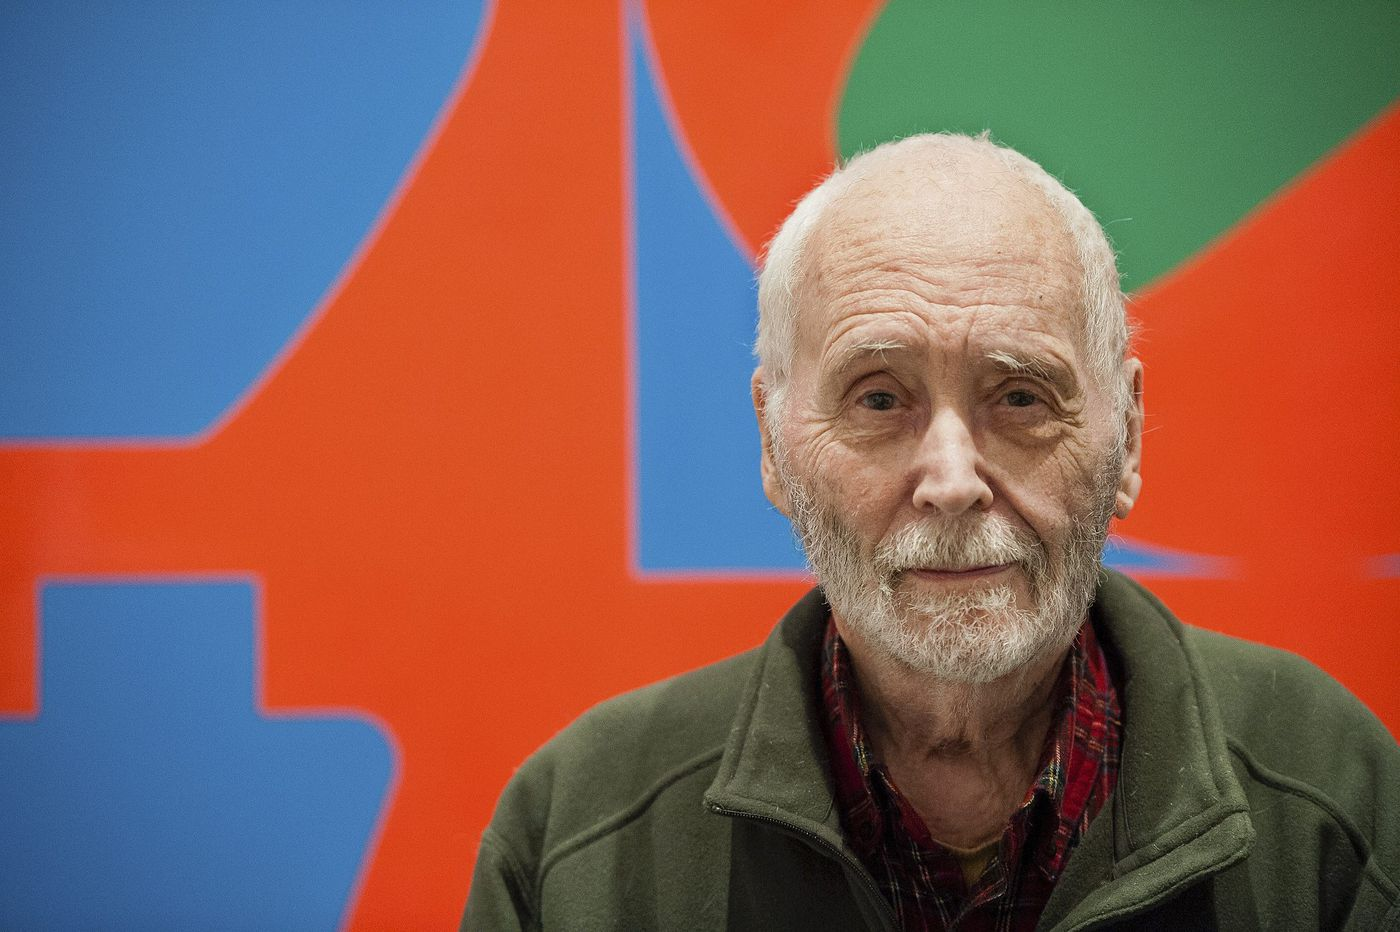 LOVE sculpture artist Robert Indiana's cause of death 'undetermined'